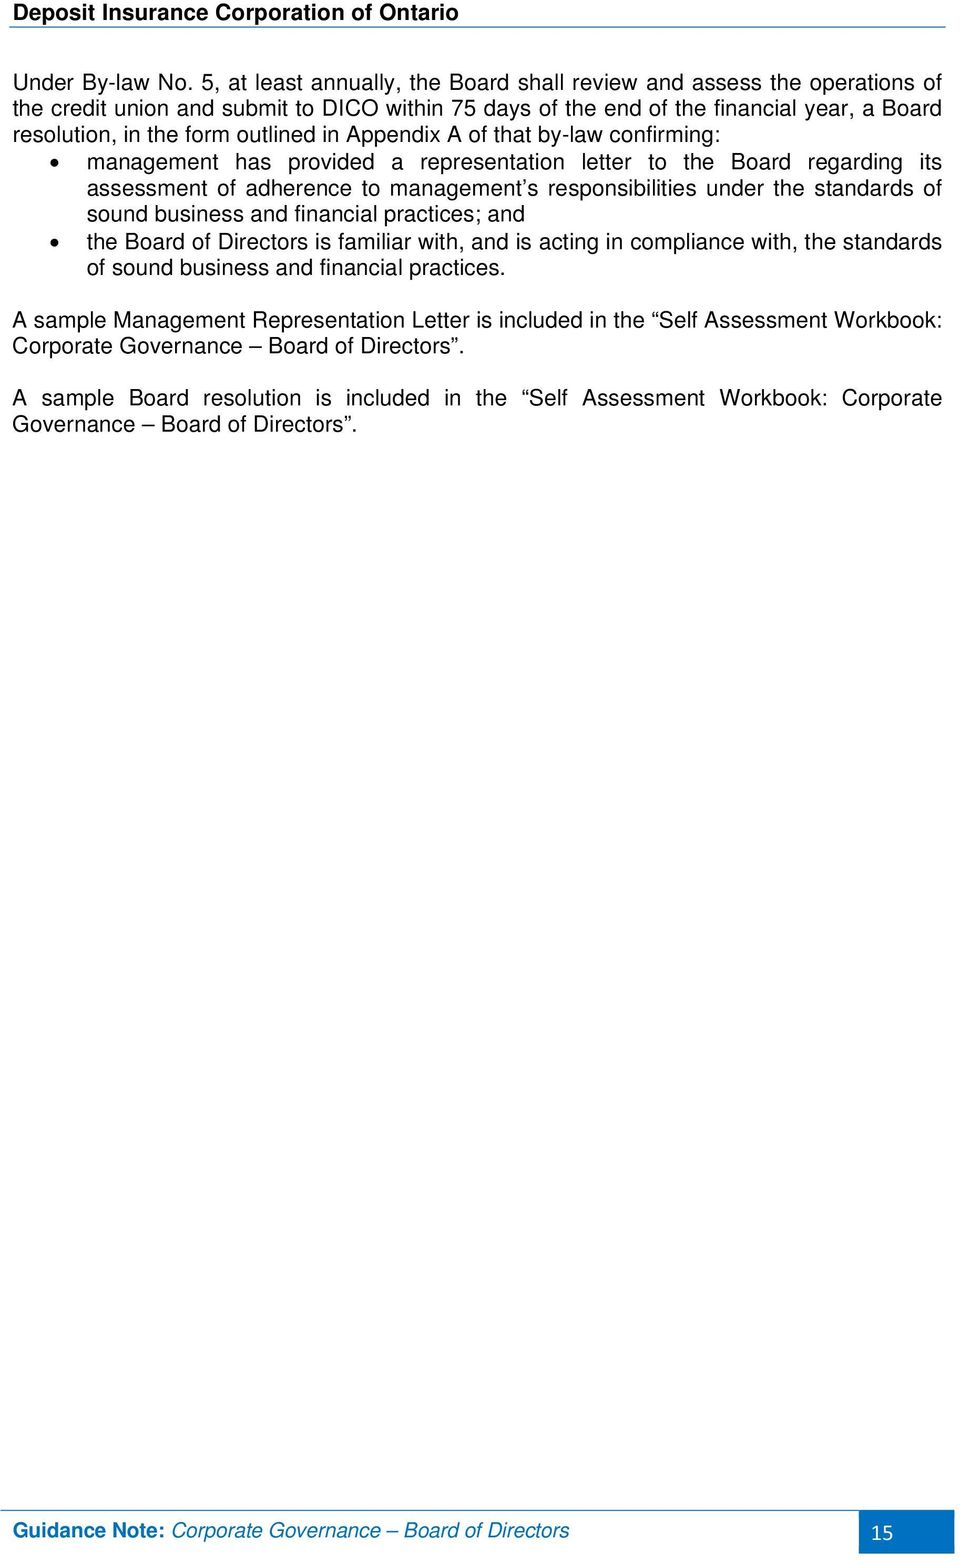 in Appendix A of that by-law confirming: management has provided a representation letter to the Board regarding its assessment of adherence to management s responsibilities under the standards of